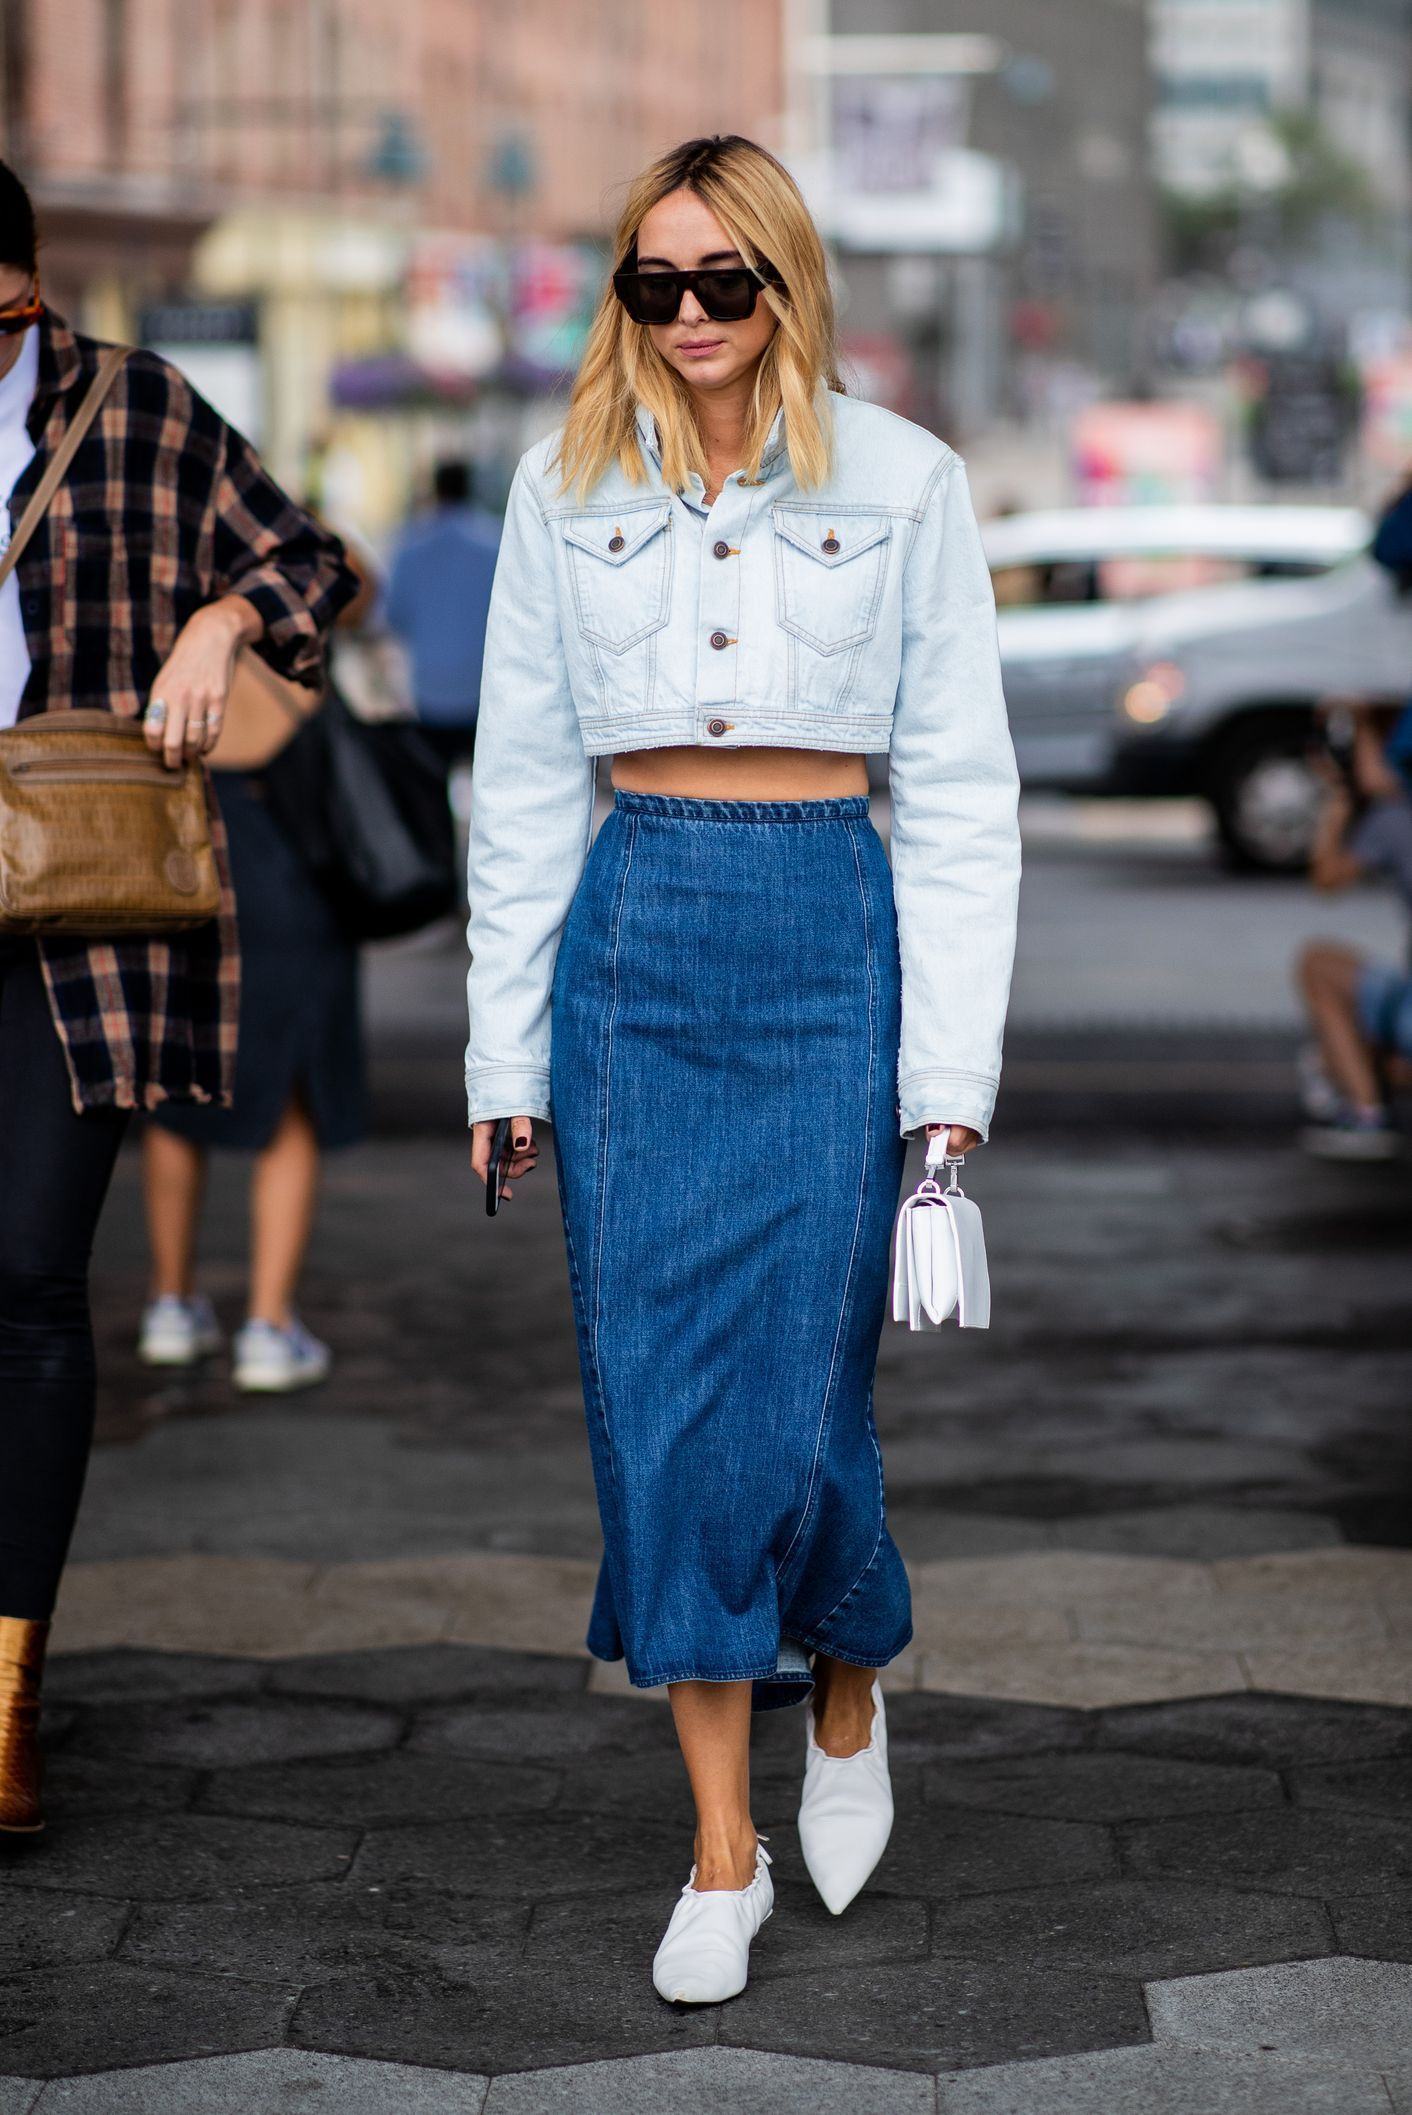 The Best Street Style Of New York Fashion Week SS20 - #Best #Fashion #New #of #SS20 #Street #style #the #Week #York